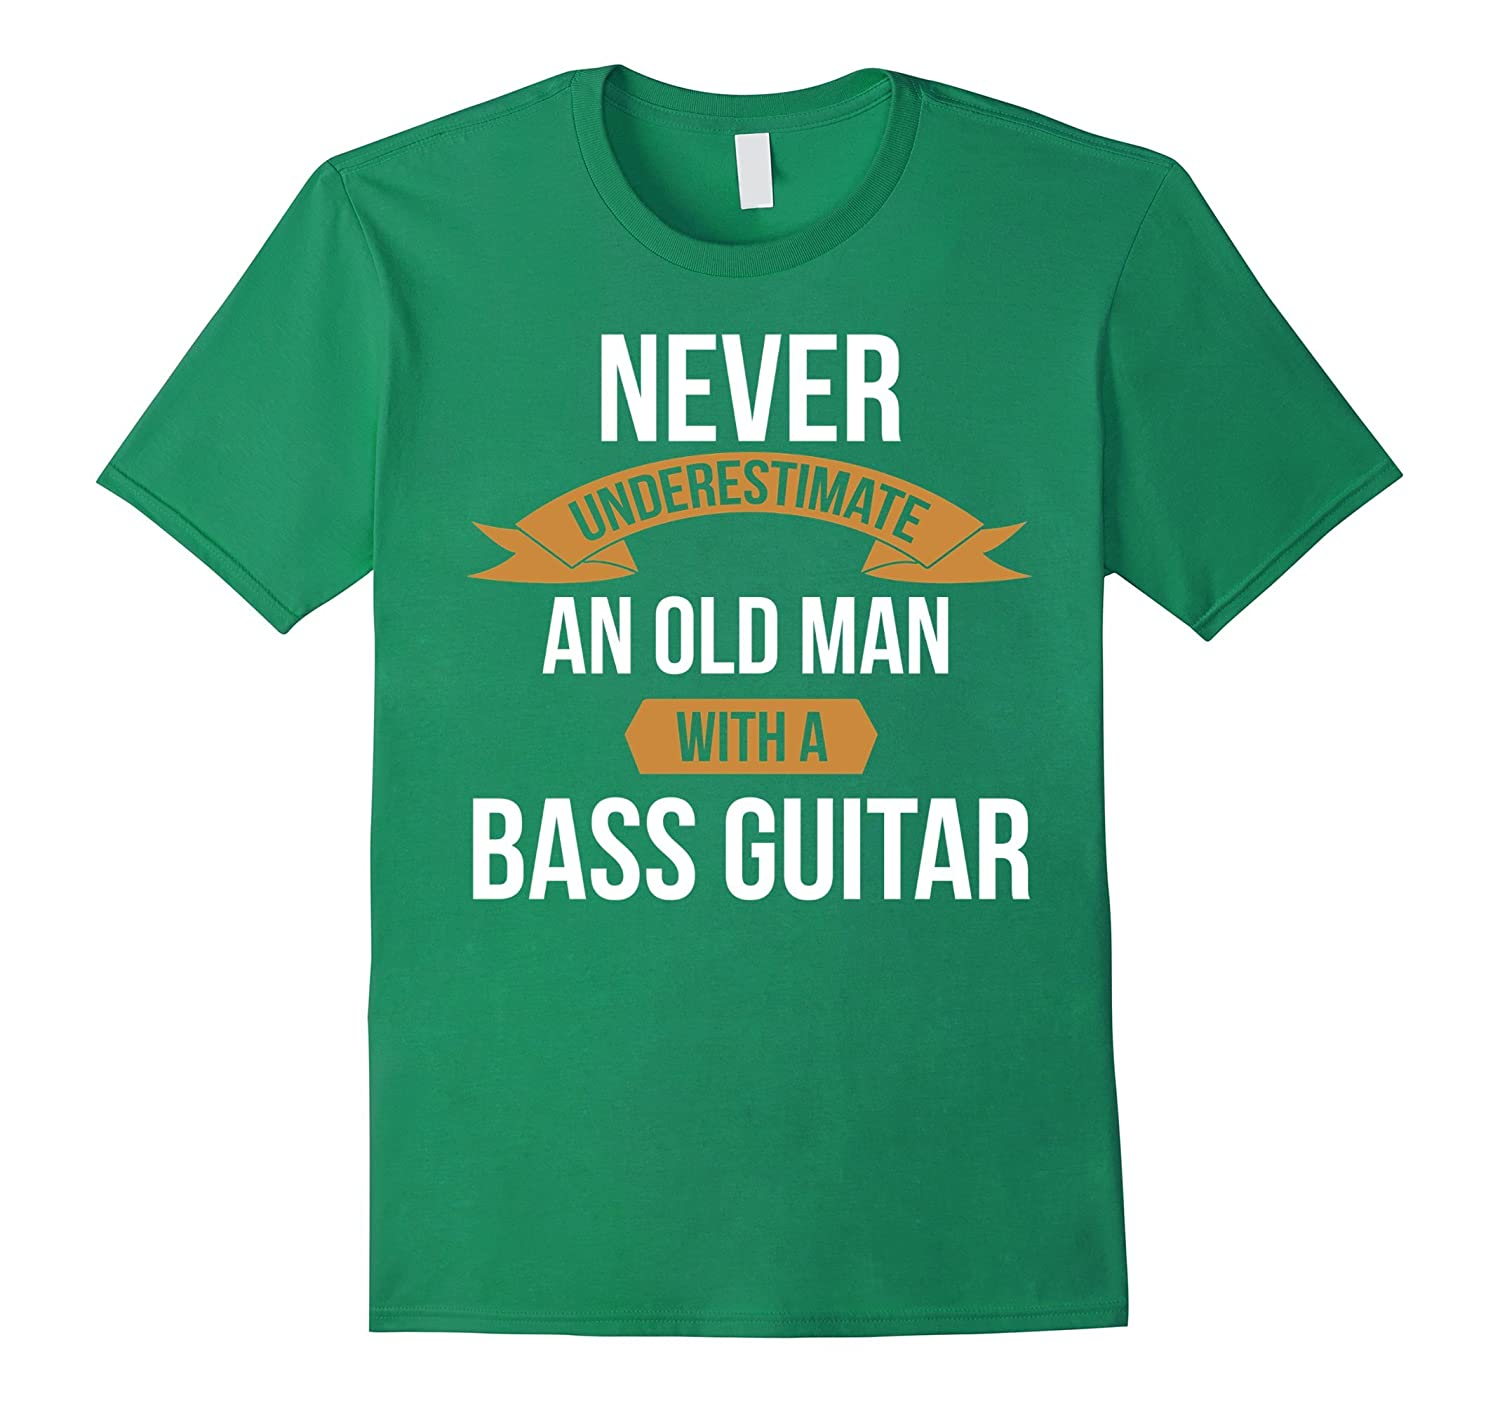 Men's Bass Player T-shirt Never underestimate an old man-BN